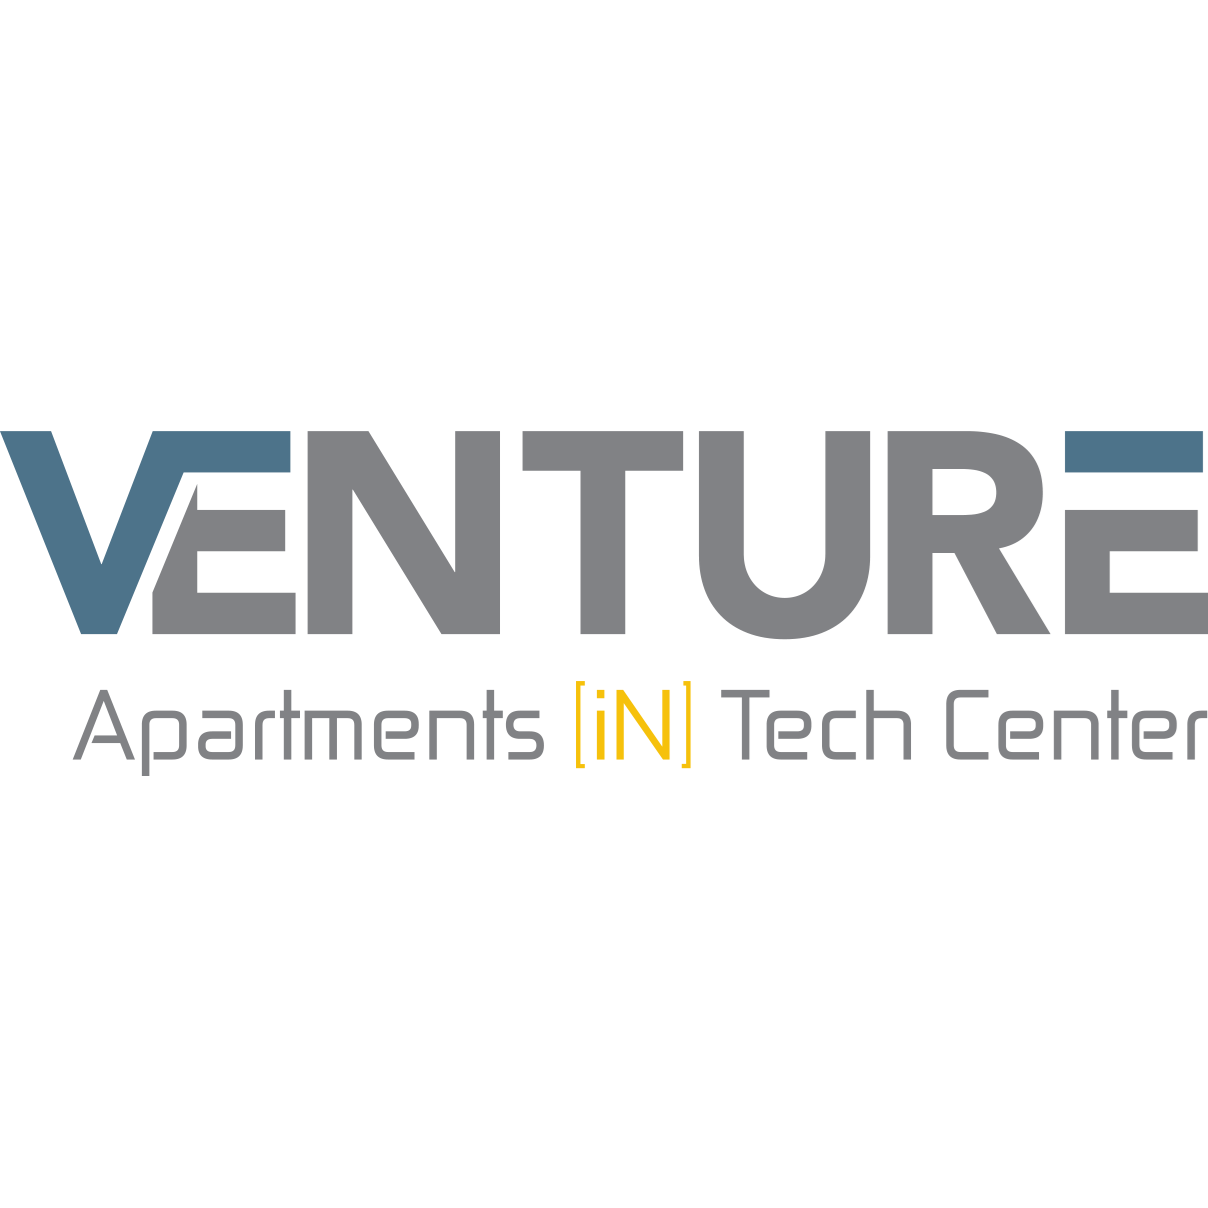 Venture Apartments iN Tech Center Coupons near me in ...